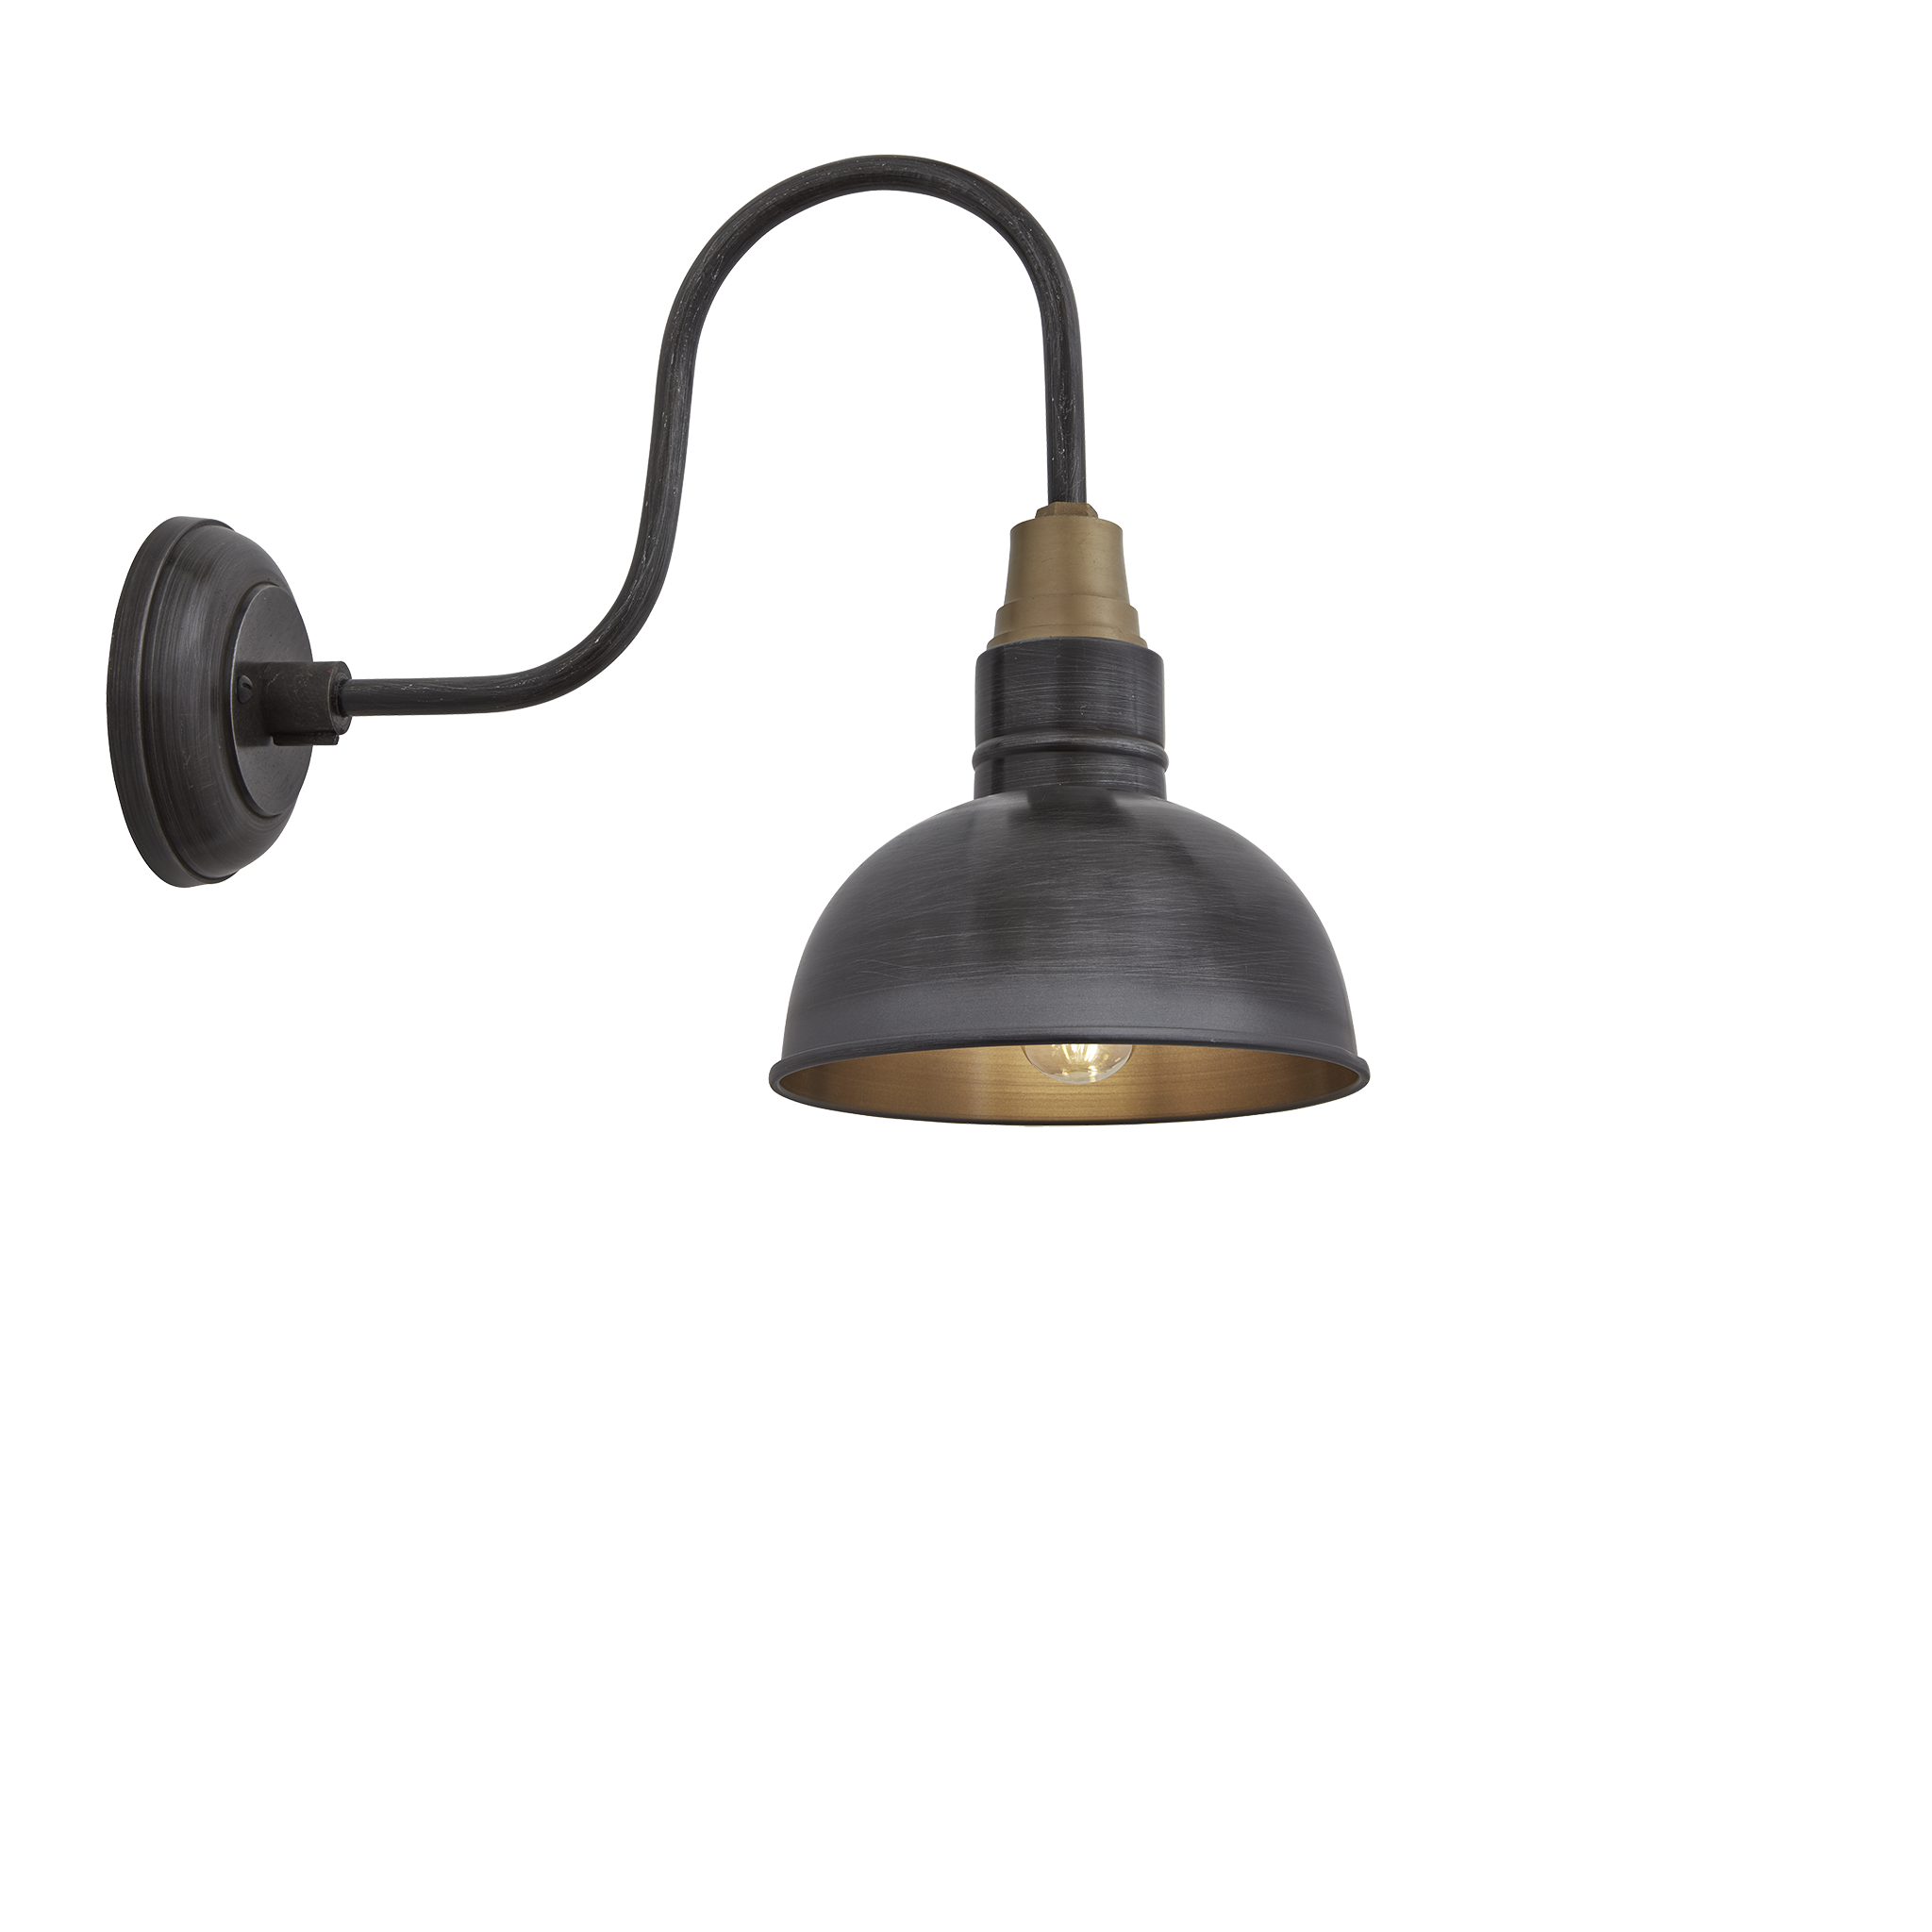 Swan neck dome wall light 8 inch pewter swans wall sconces swan neck dome wall light 8 inch pewter arubaitofo Choice Image